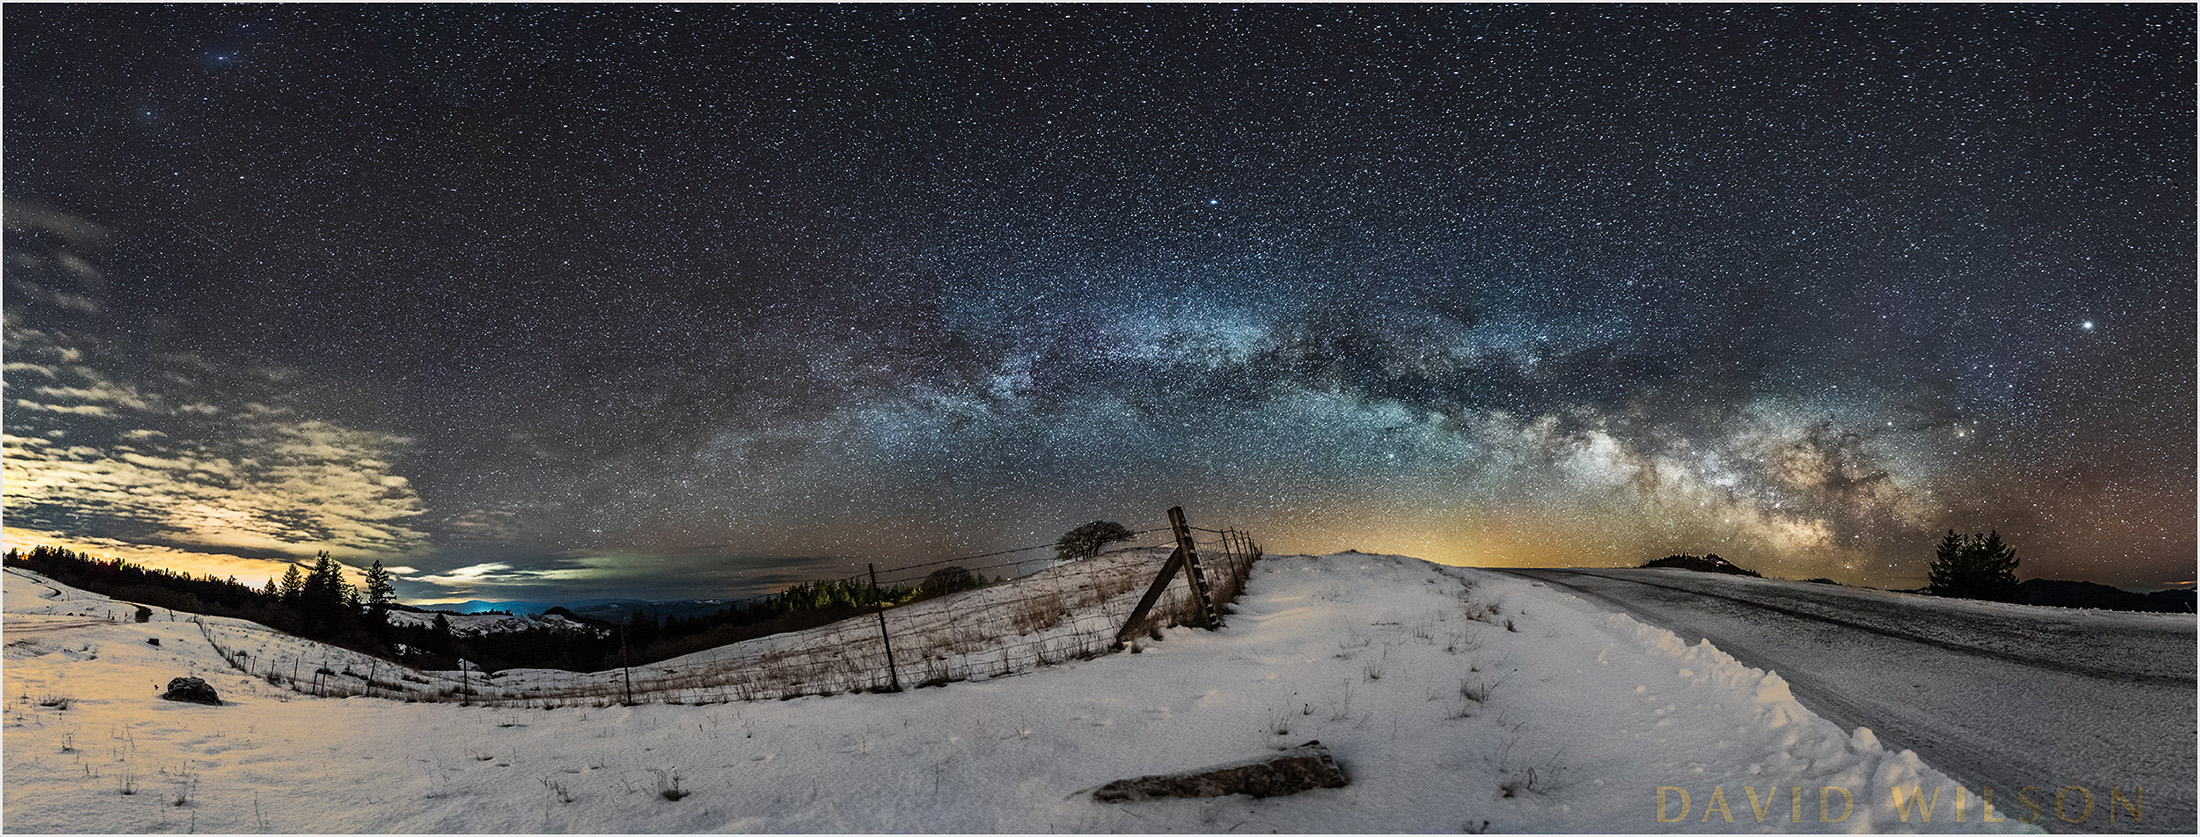 Snowy nighttime panorama beneath the Milky Way along a country road.